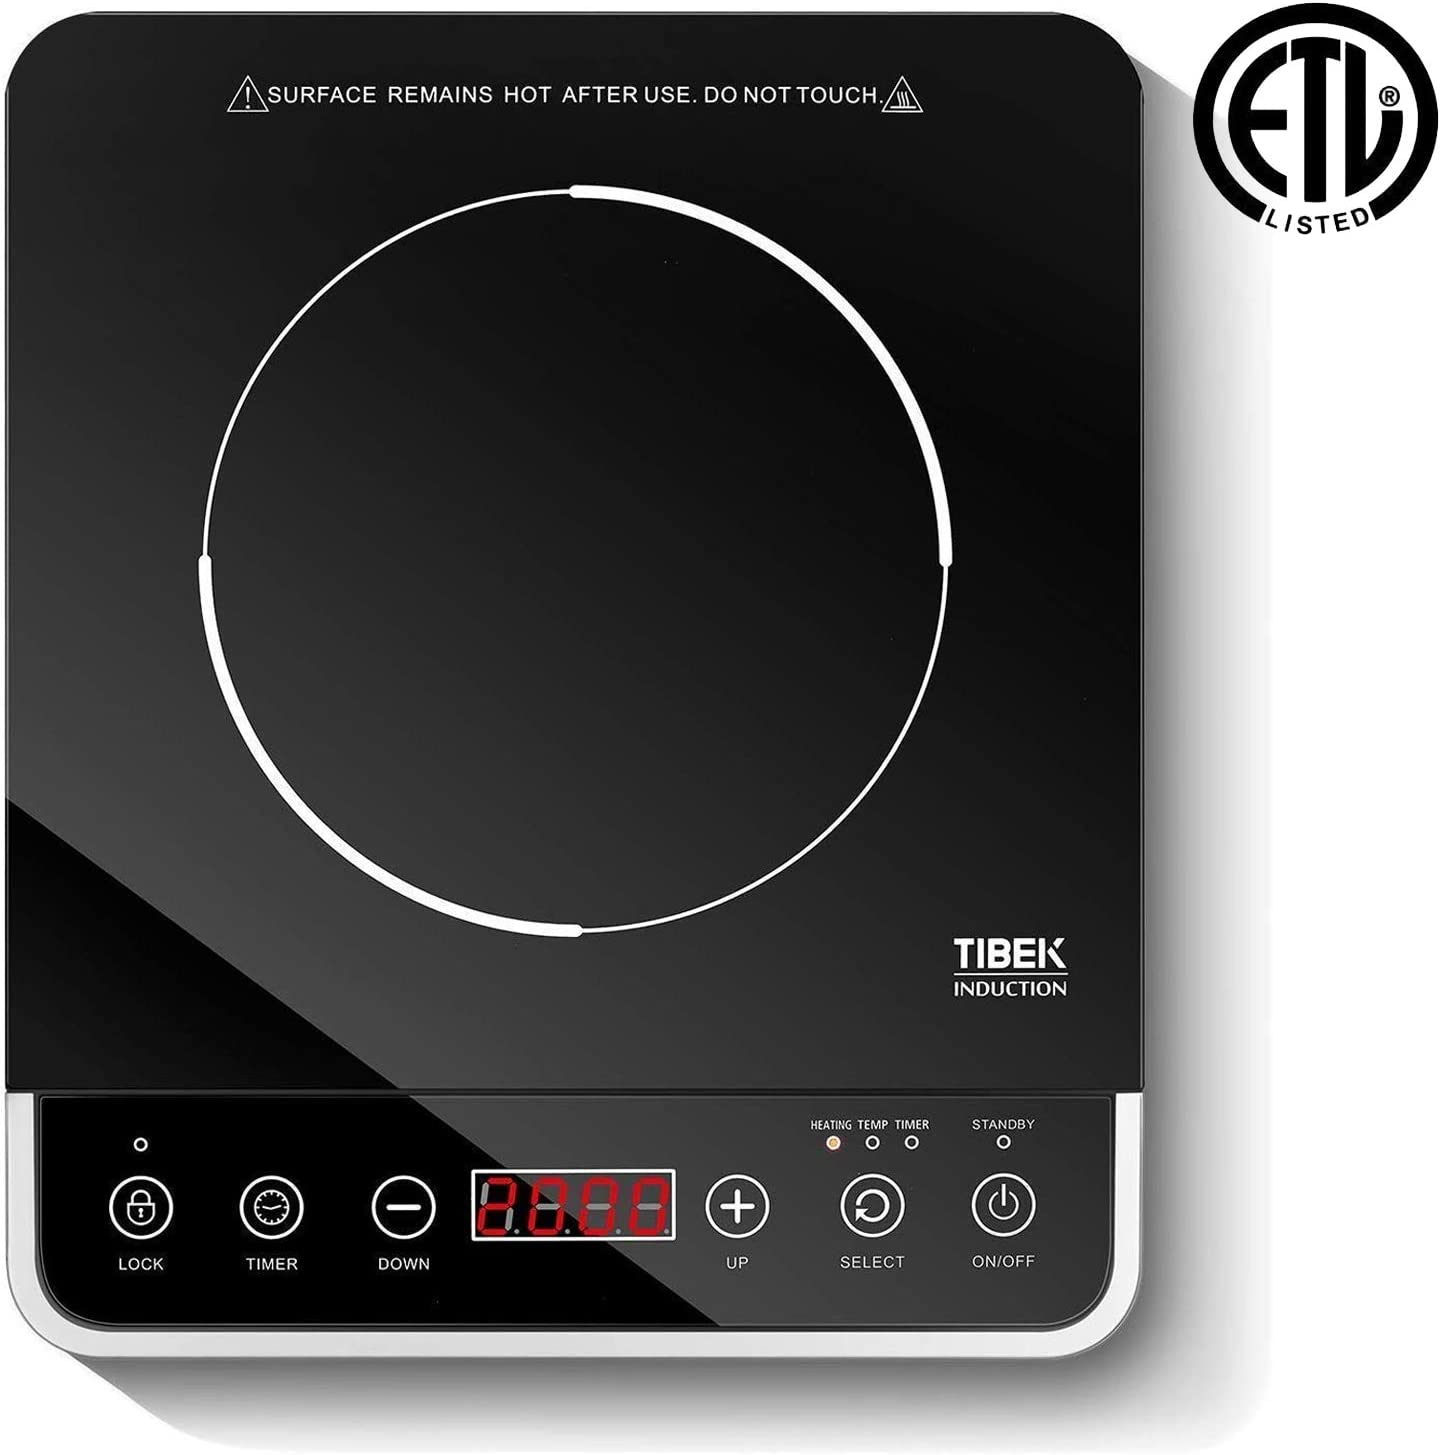 Induction Cooktop,1800 Watt Portable Induction Burner for Rapid Heating, Induction Cooker with 10 Power Temperature Settings, Up to 180 mins Built-in Timer, Smart Sensor Touch Panel, Kids Safety Lock